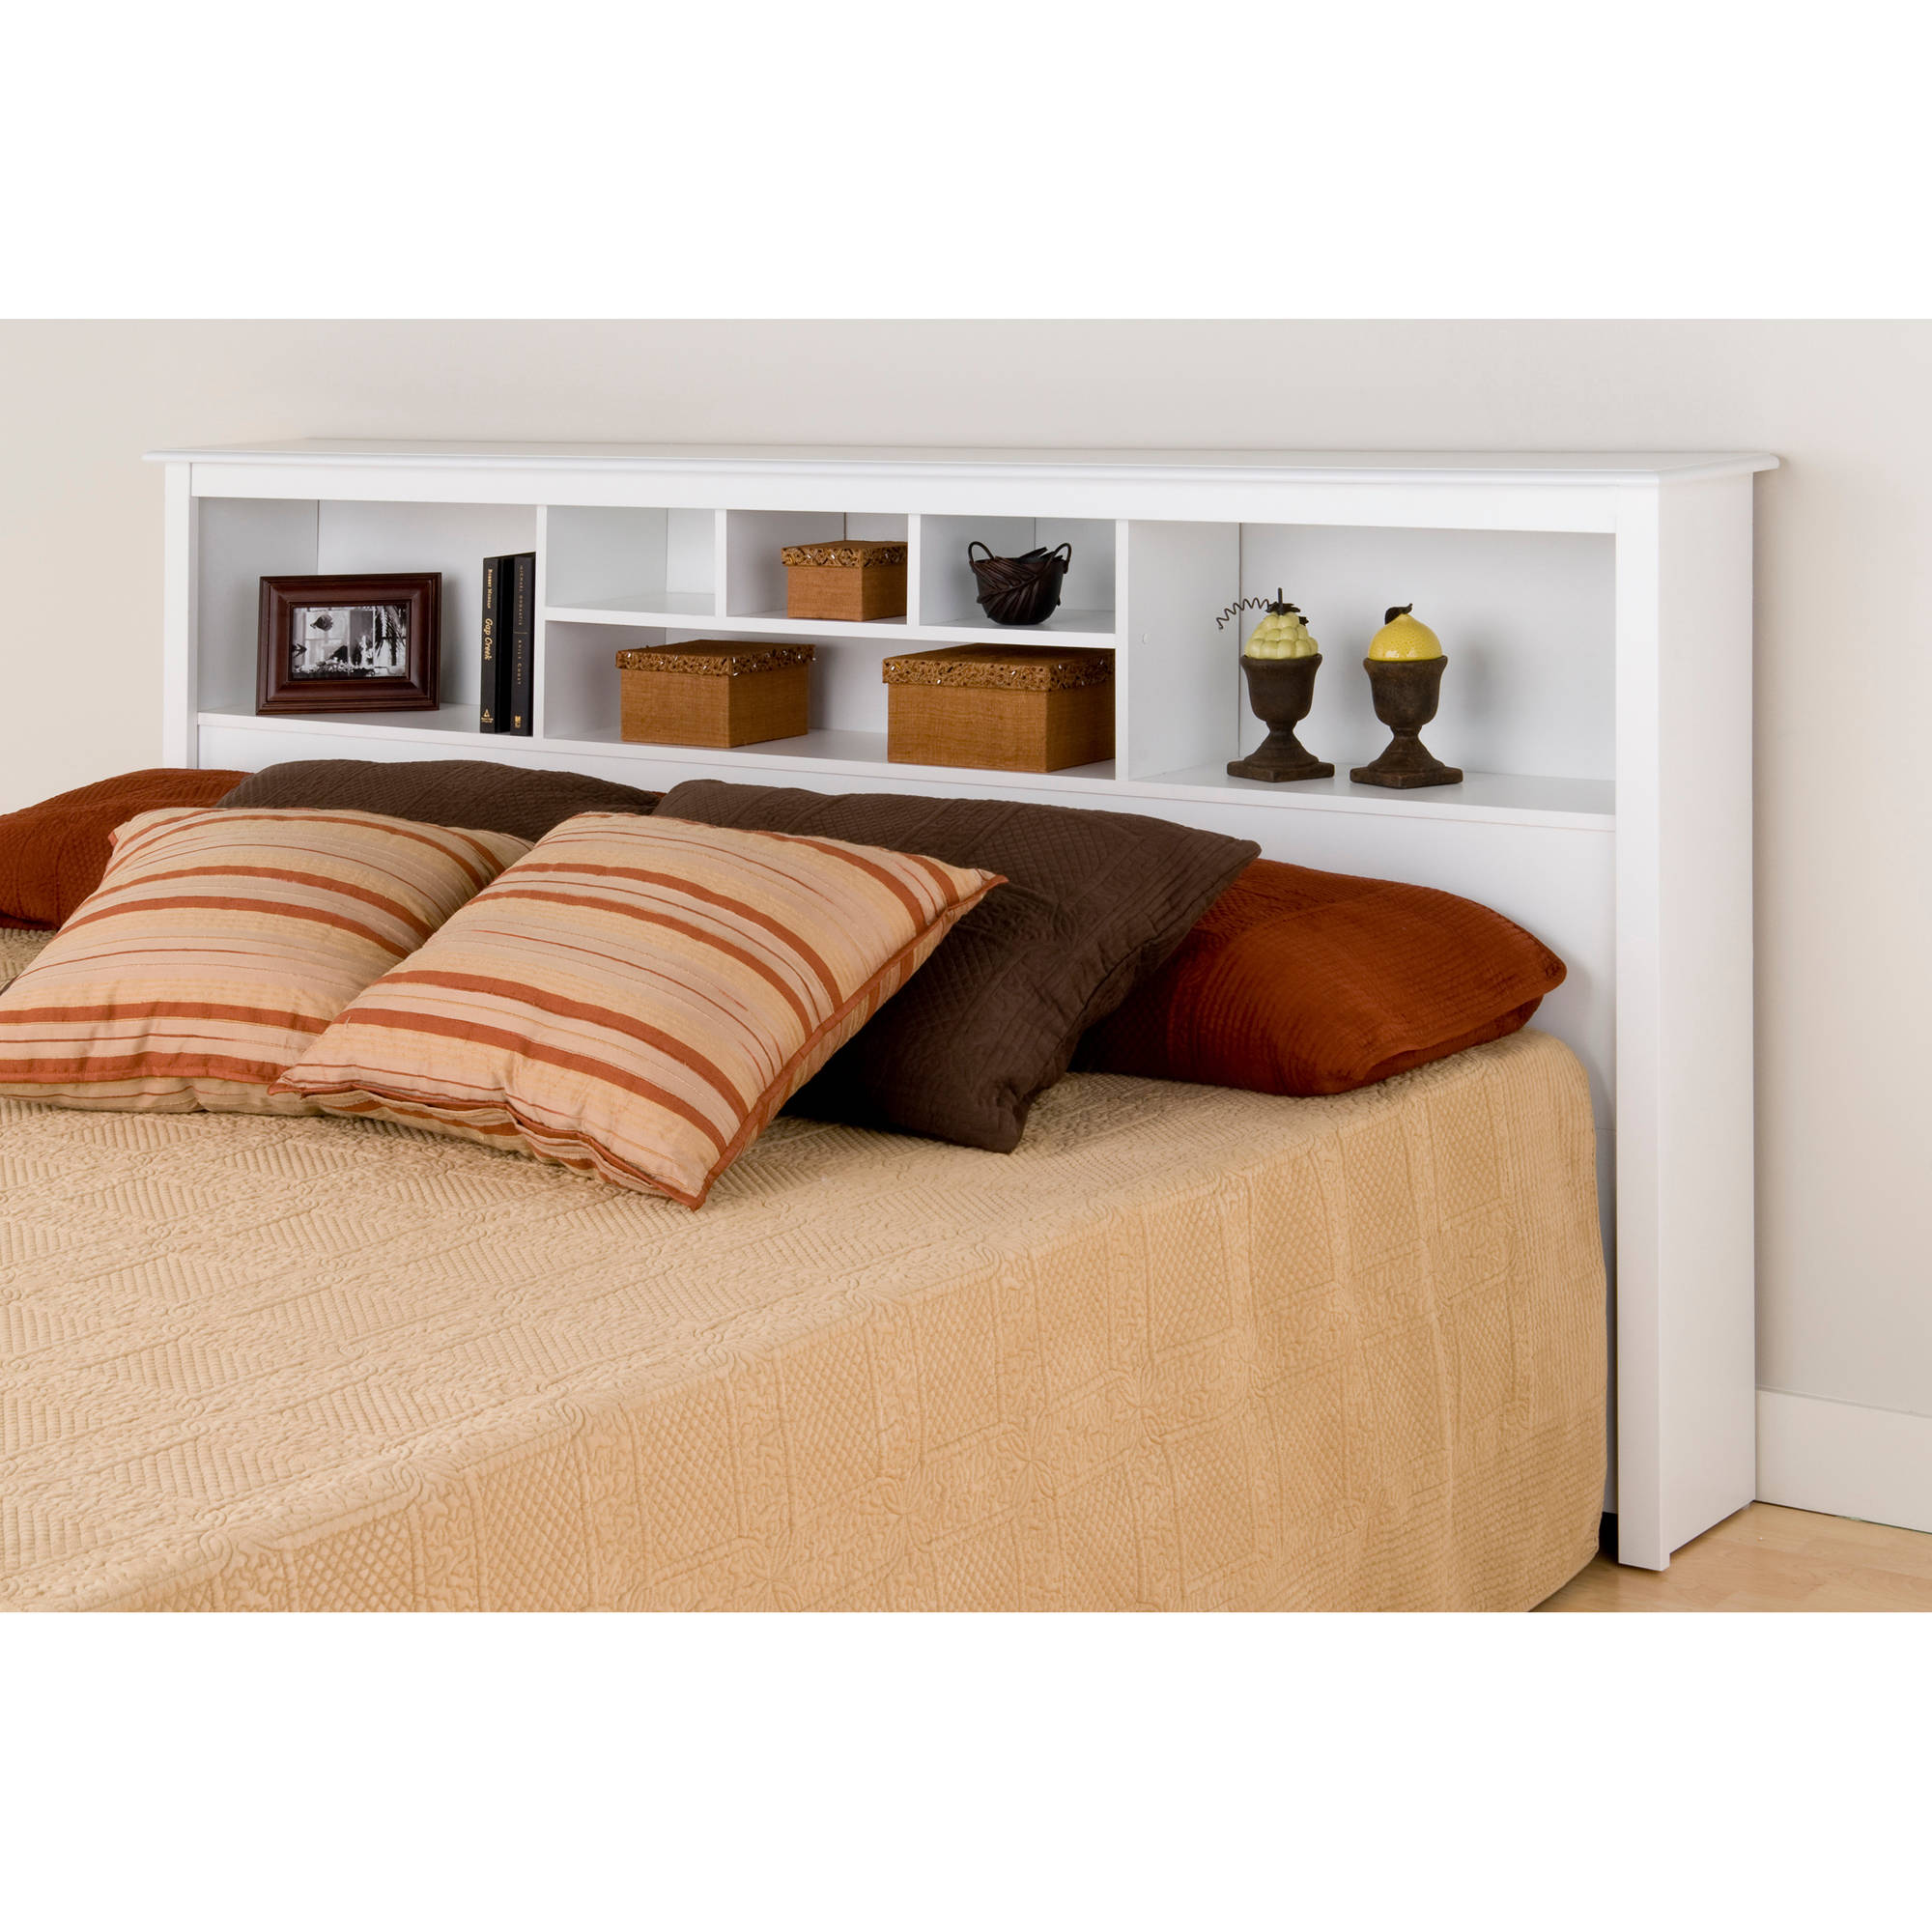 Charmant Prepac Brisbane Full Queen Storage Headboard, Black   Walmart.com